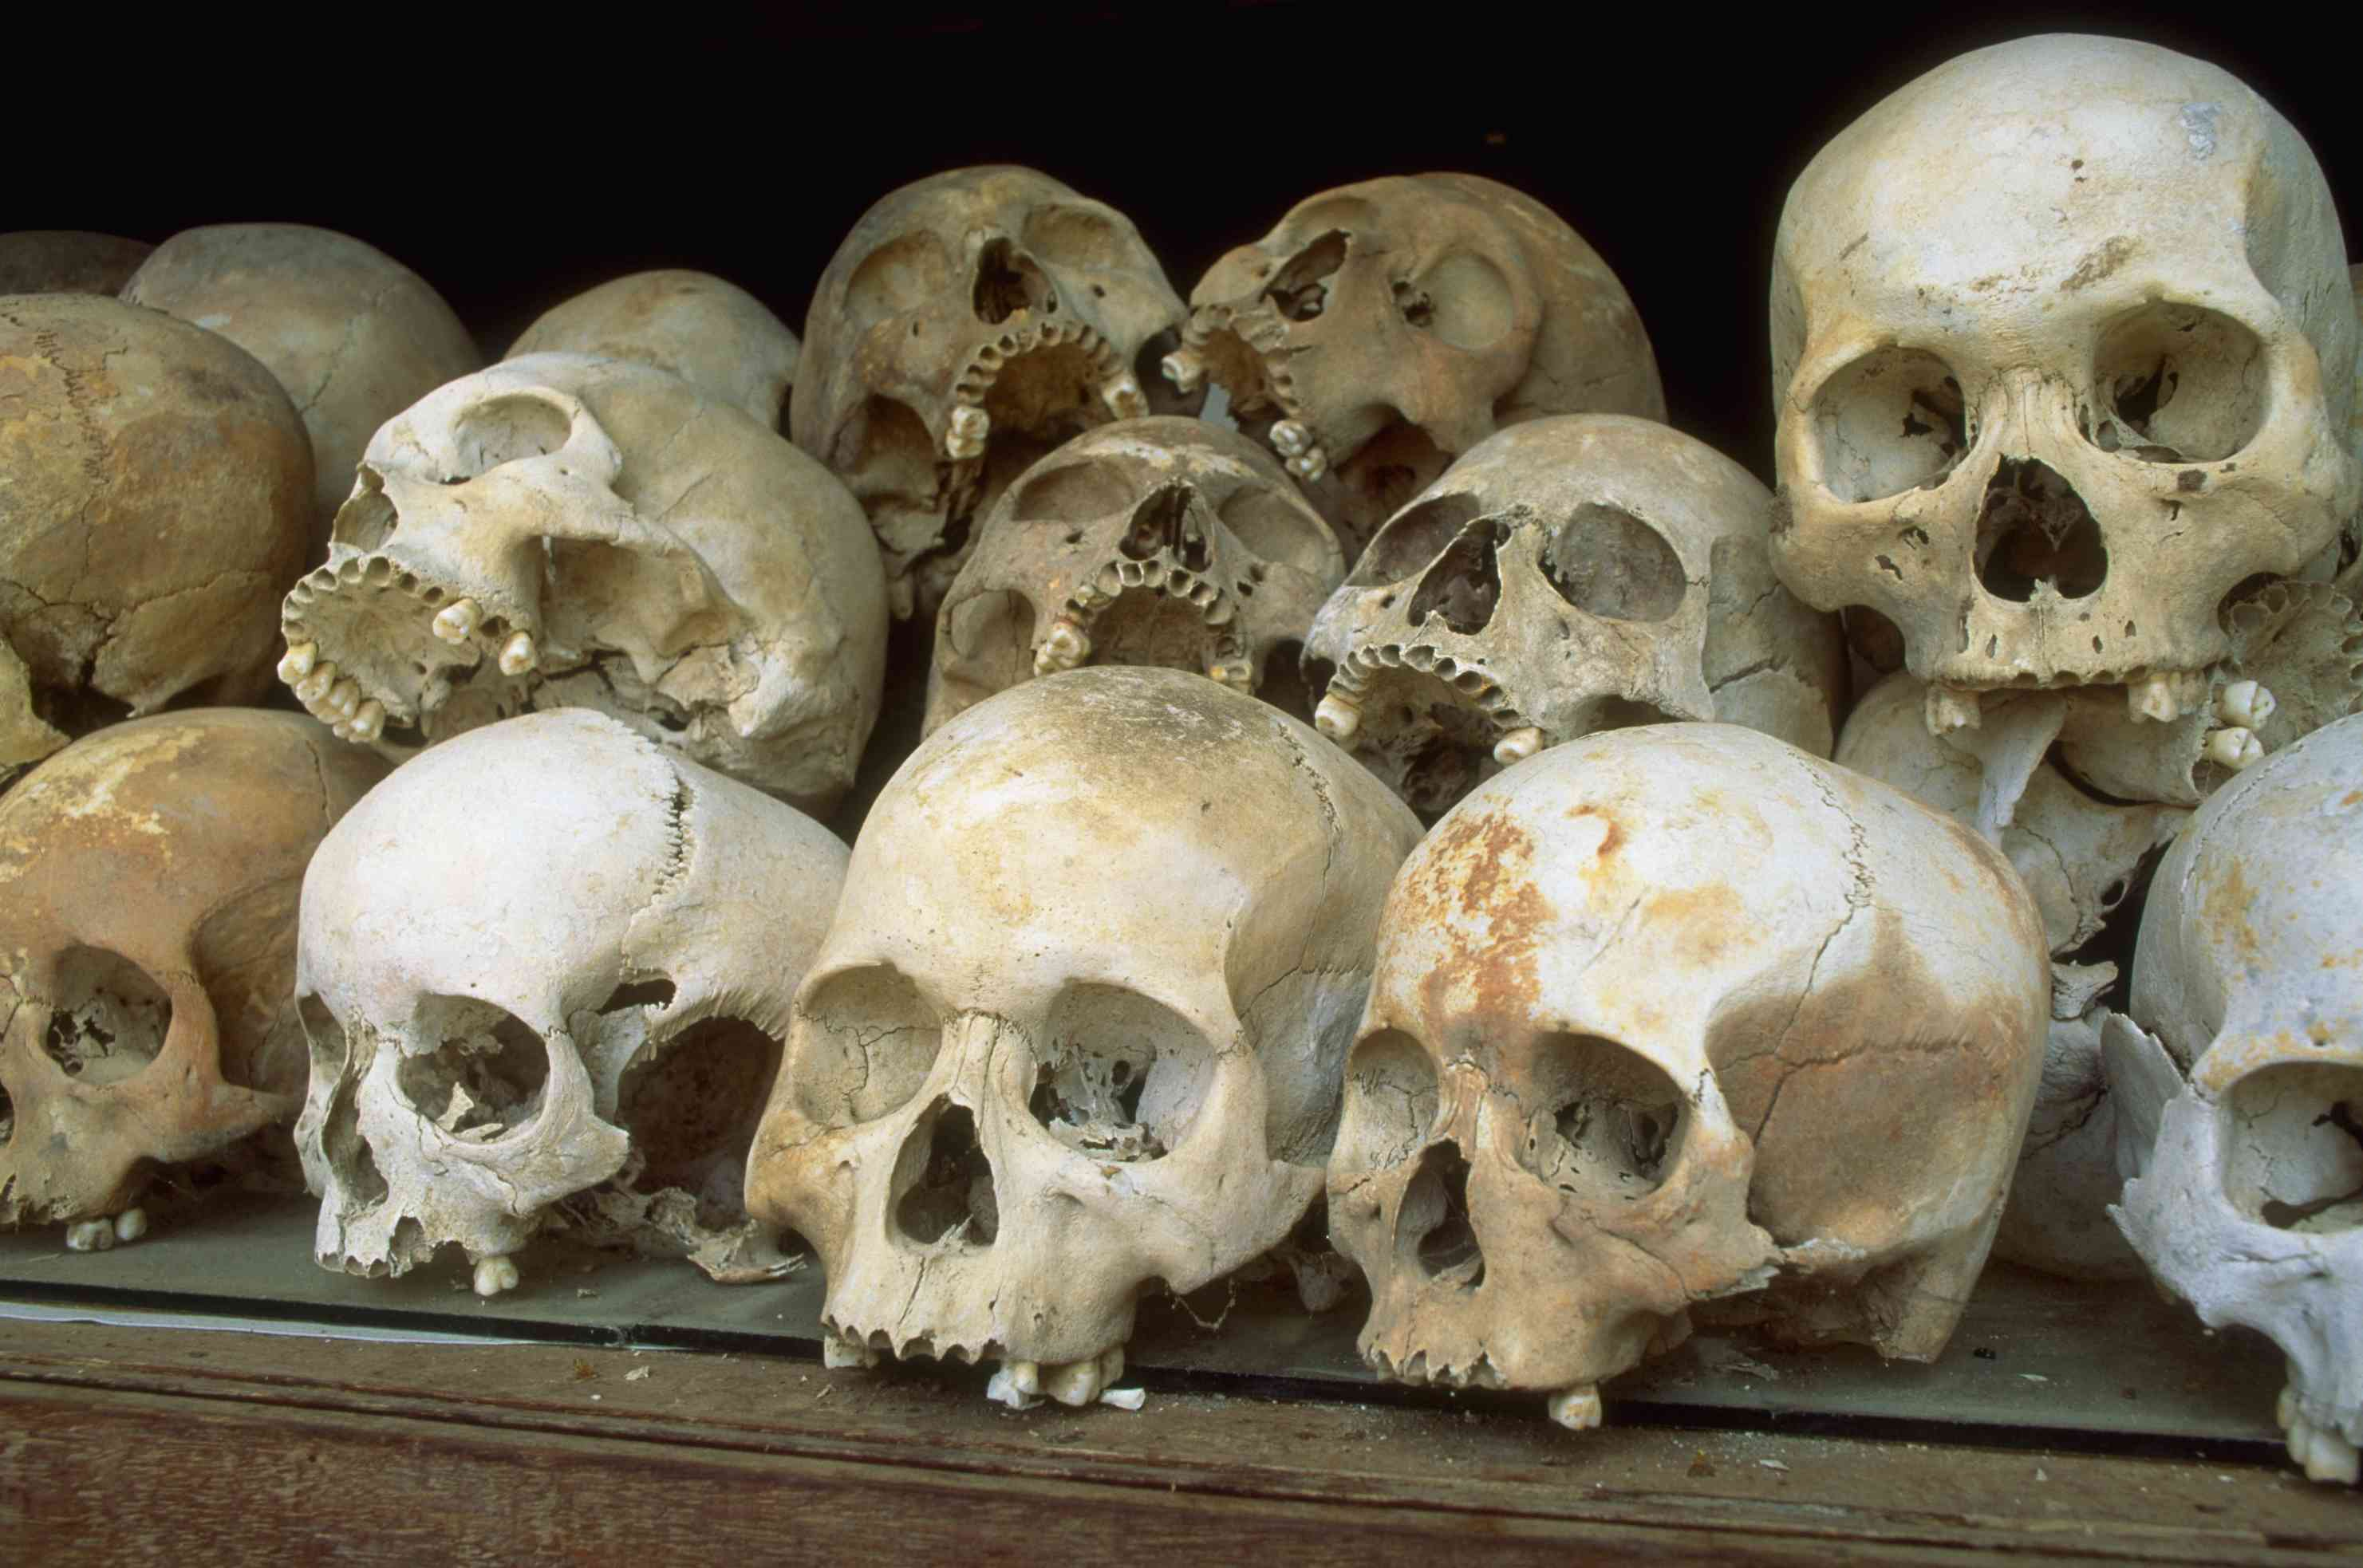 Human skulls from the victims of the